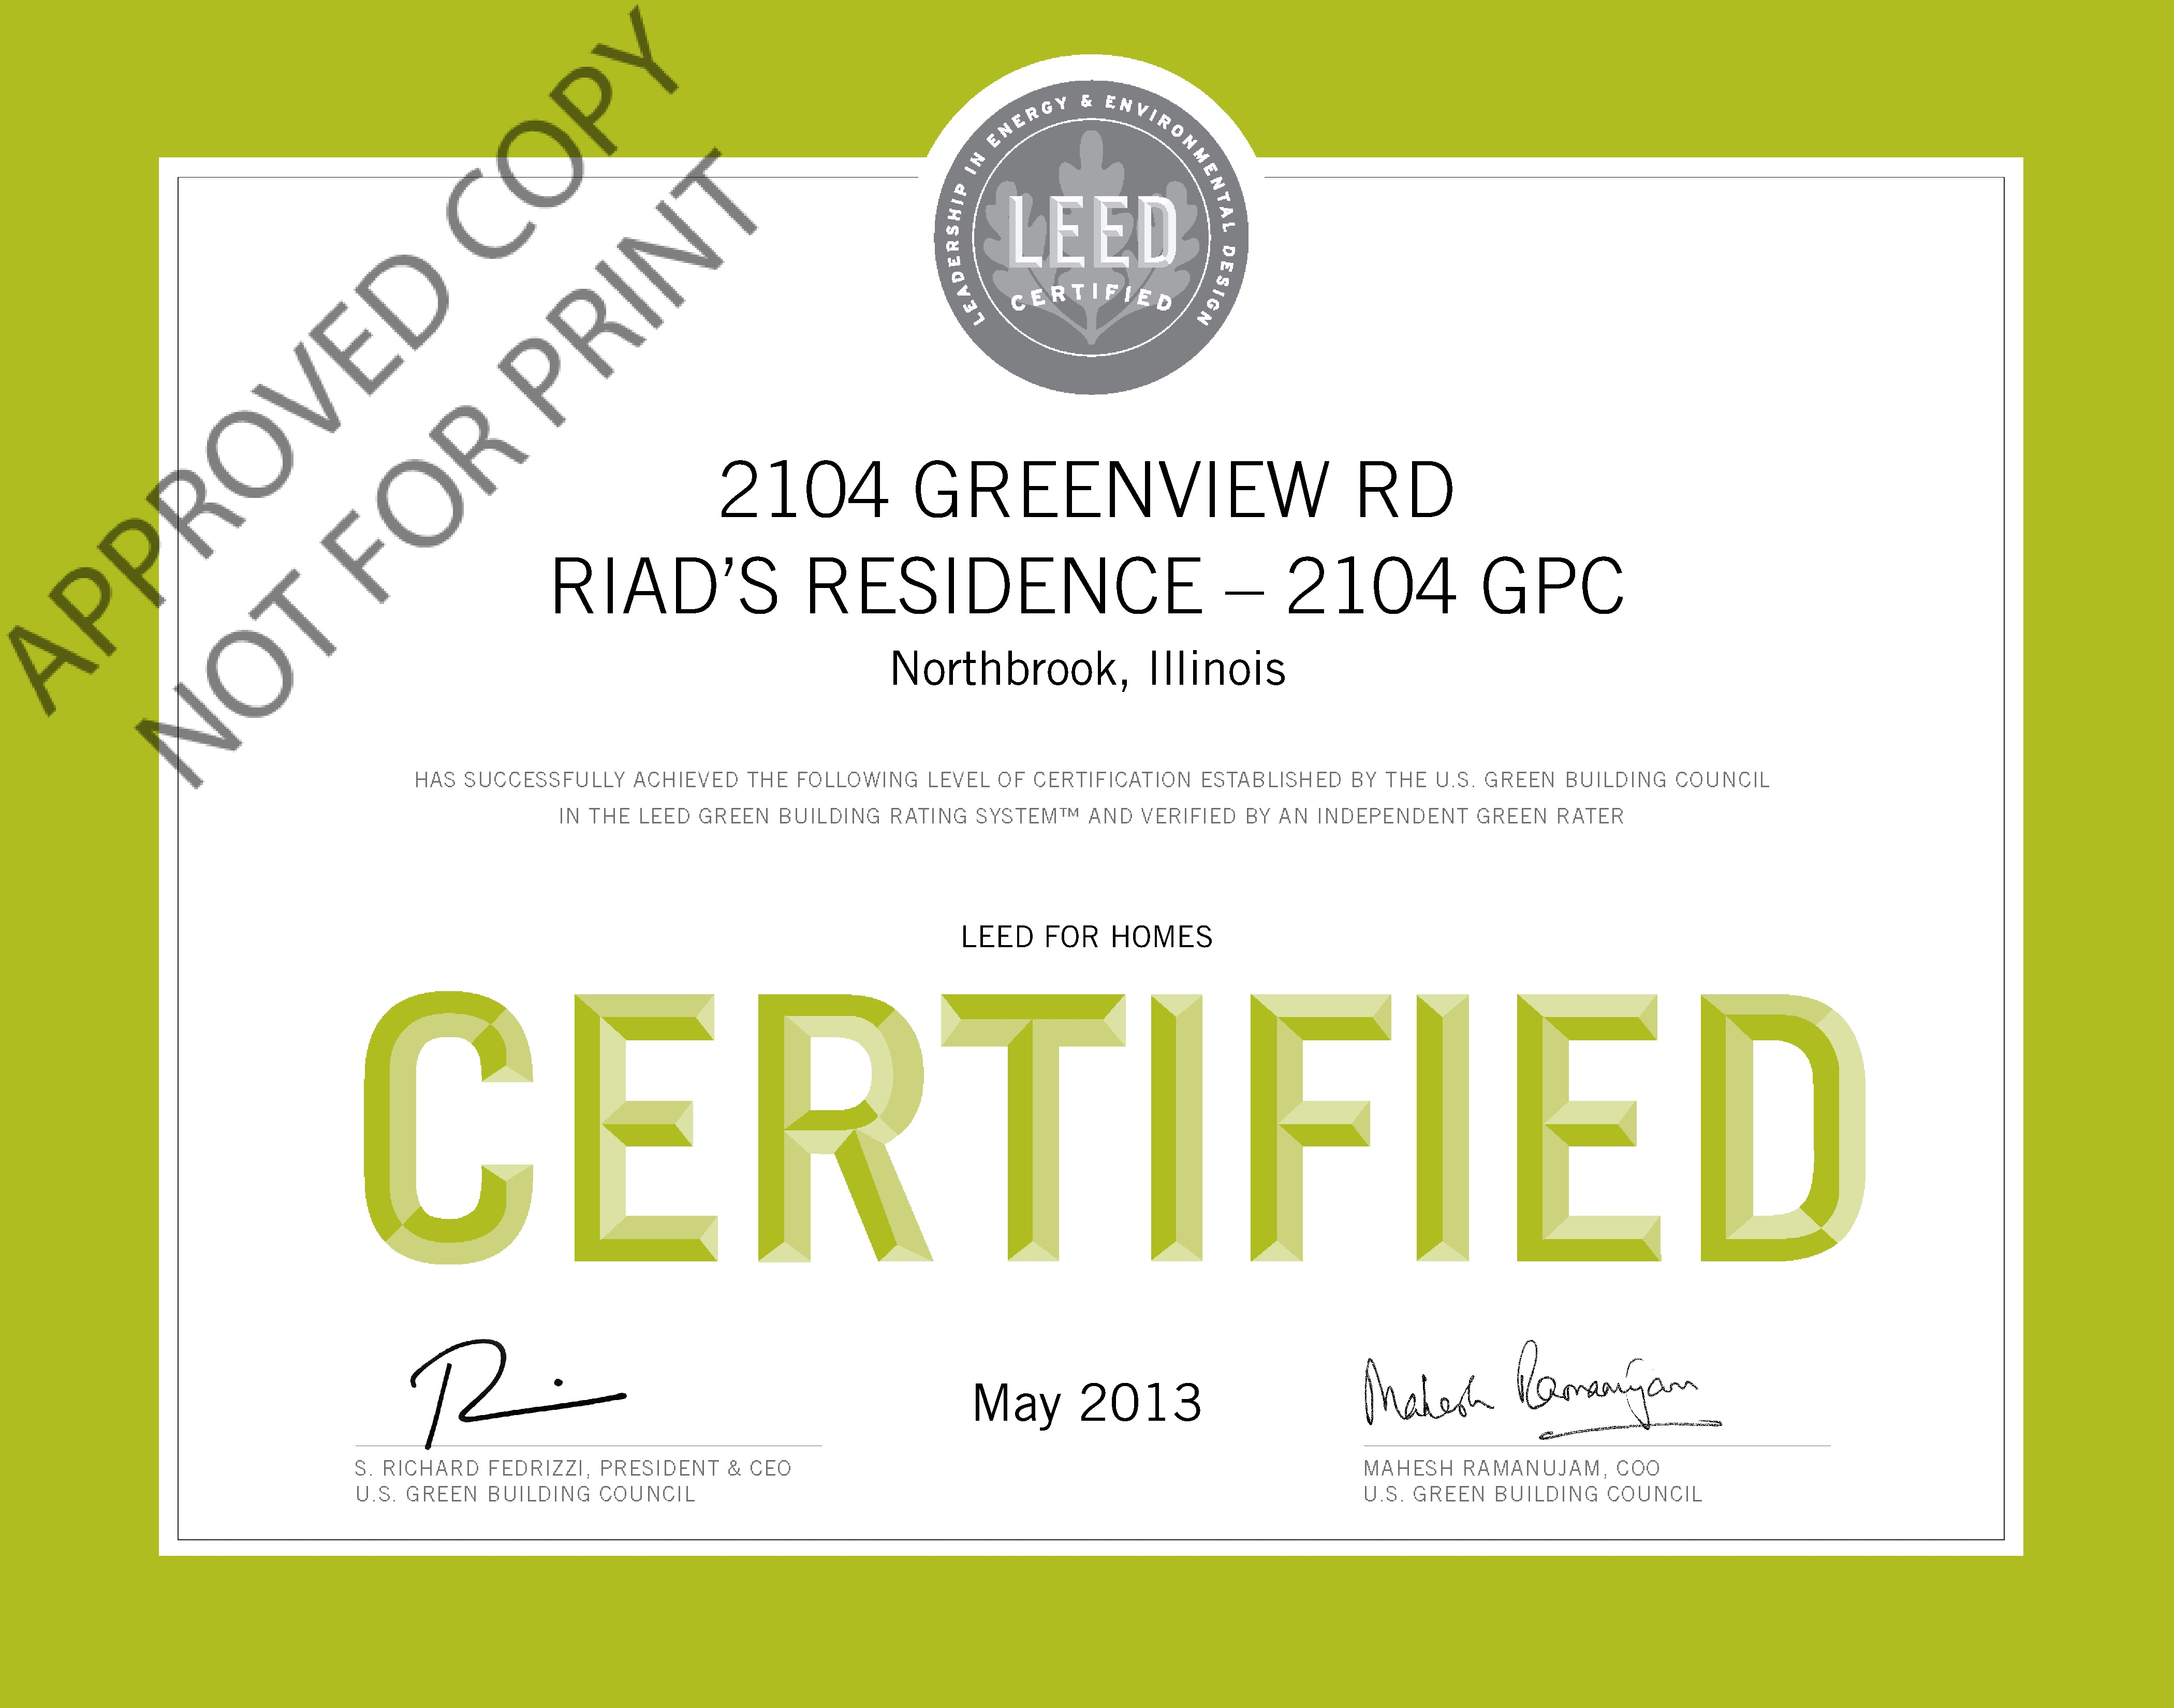 Leed certified archives greenhome institute 0010644179 certificate 1betcityfo Choice Image